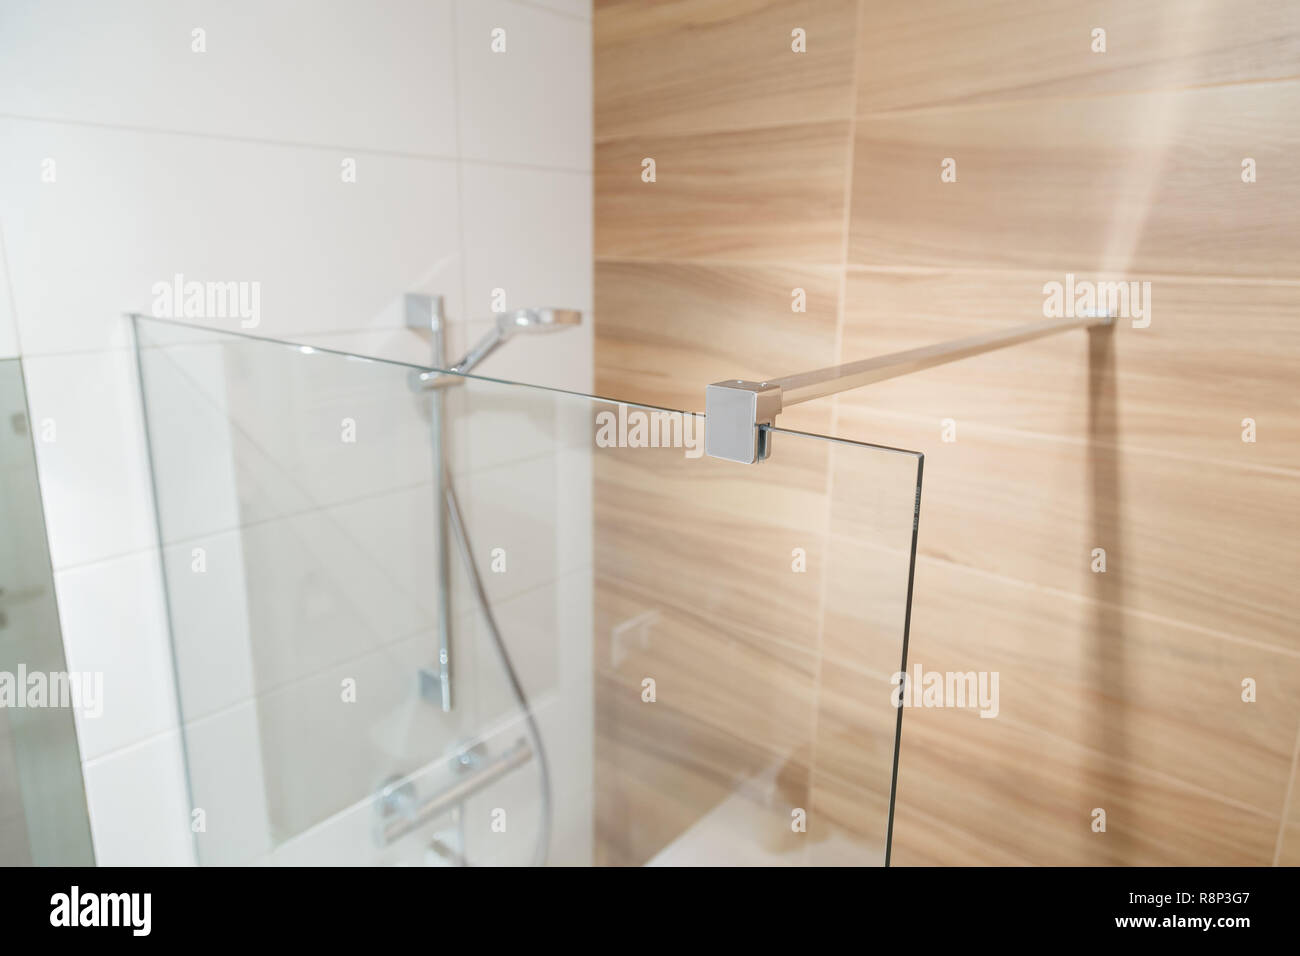 Clamp for Glass curtain for the bathroom. Stock Photo